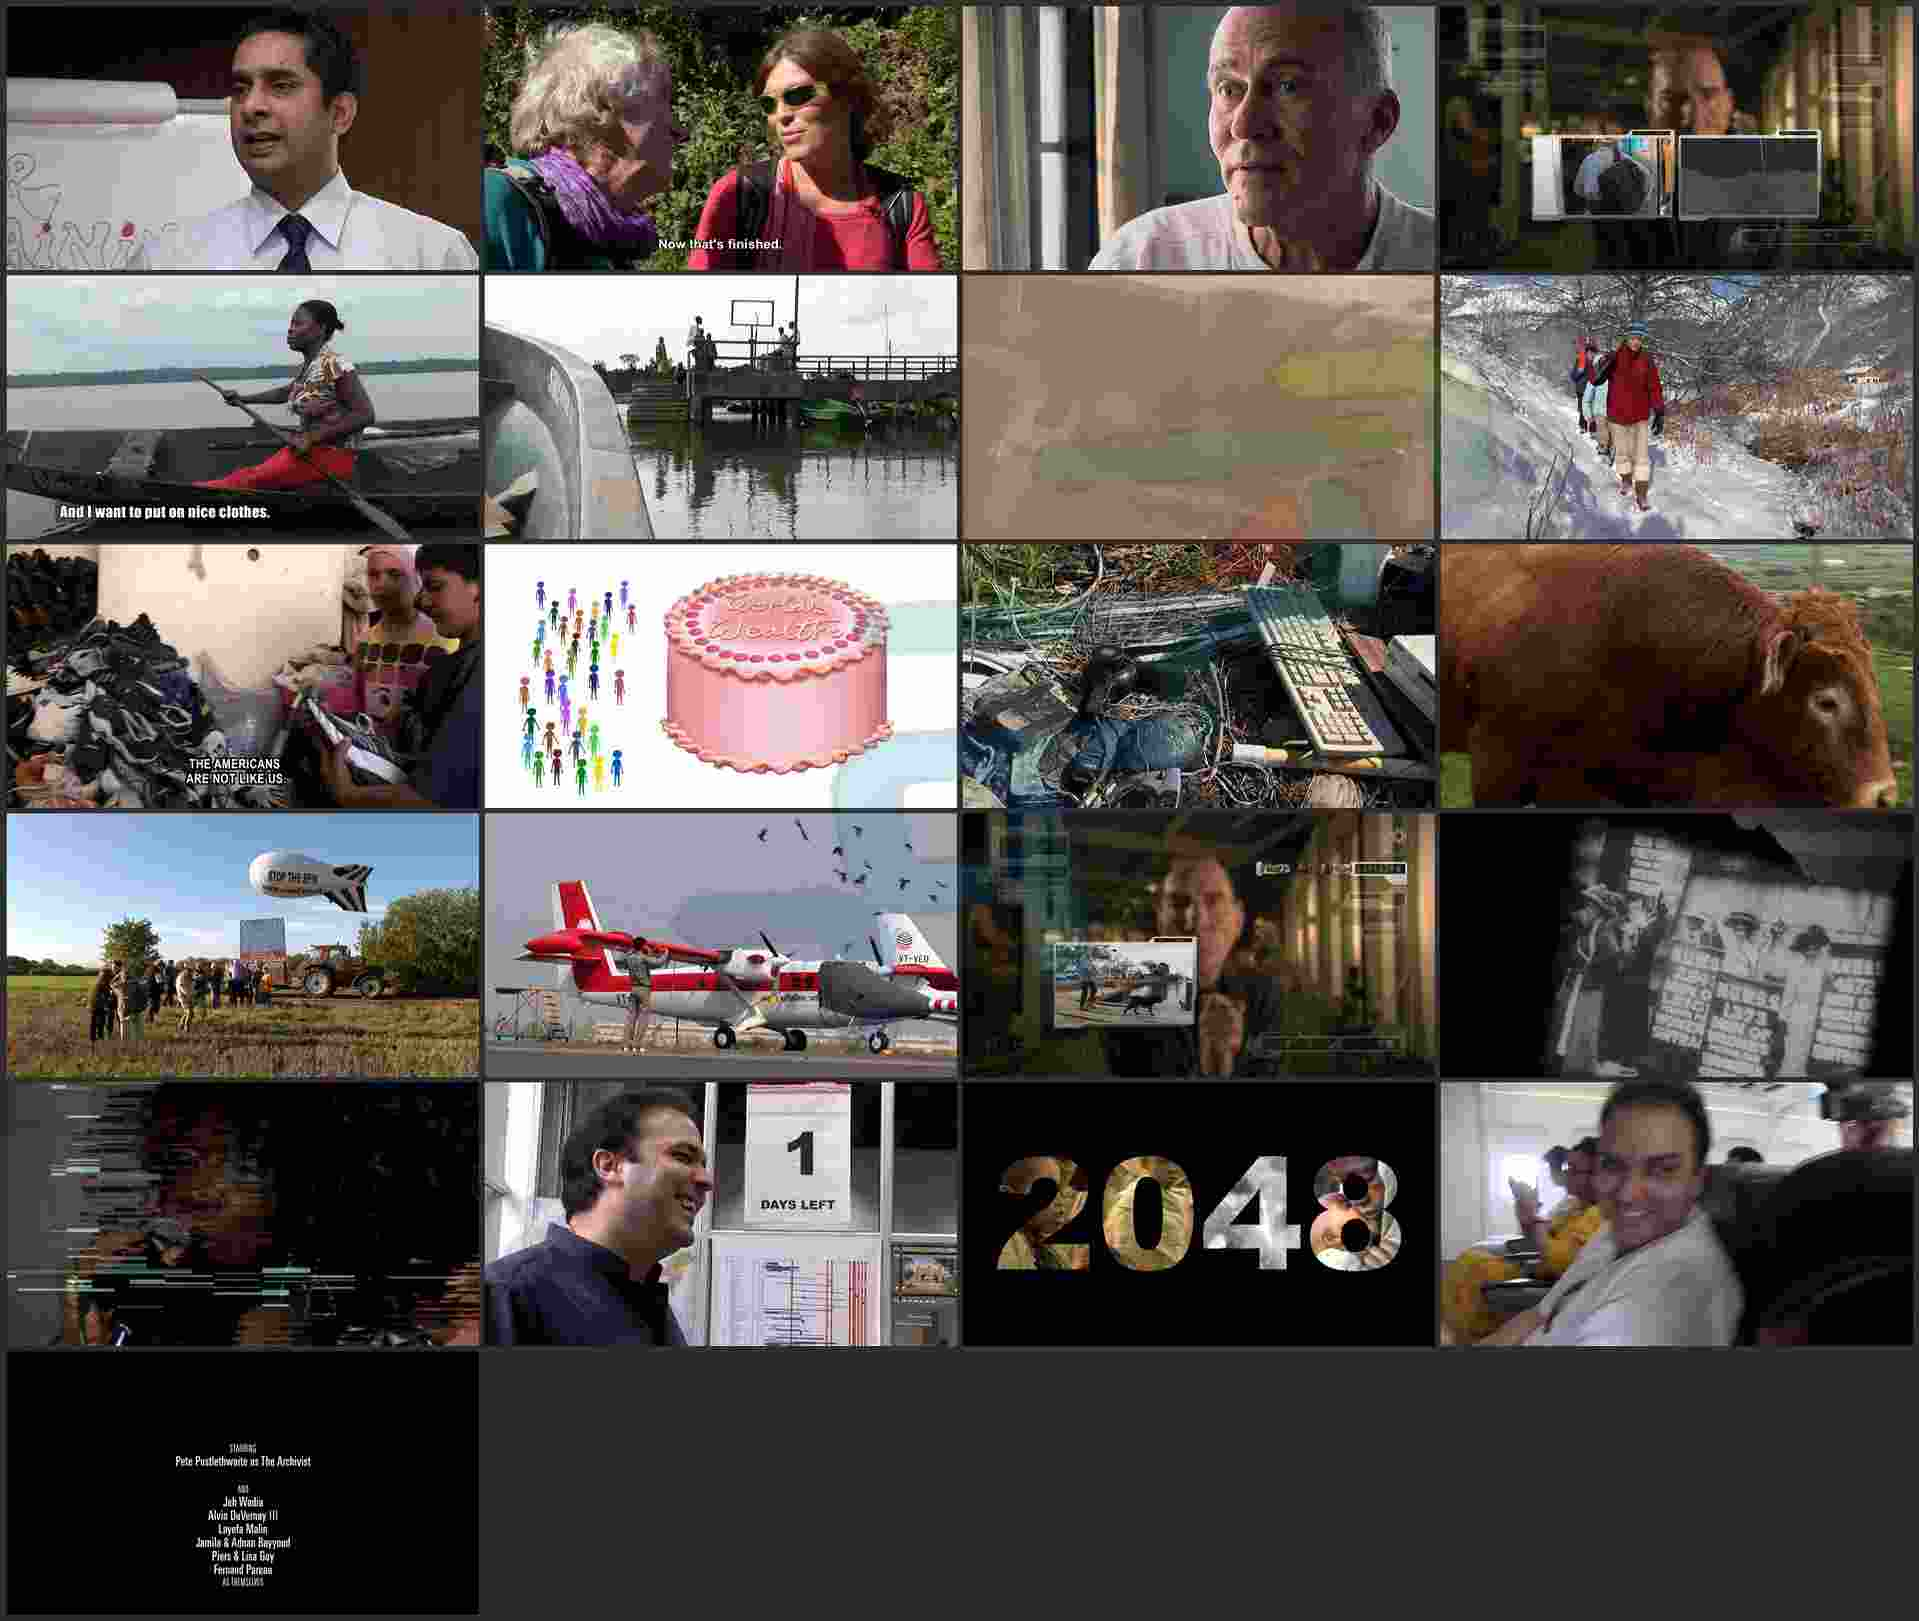 The_Age_of_Stupid_2009_1080p__Download.ir.mp4 (Copy)